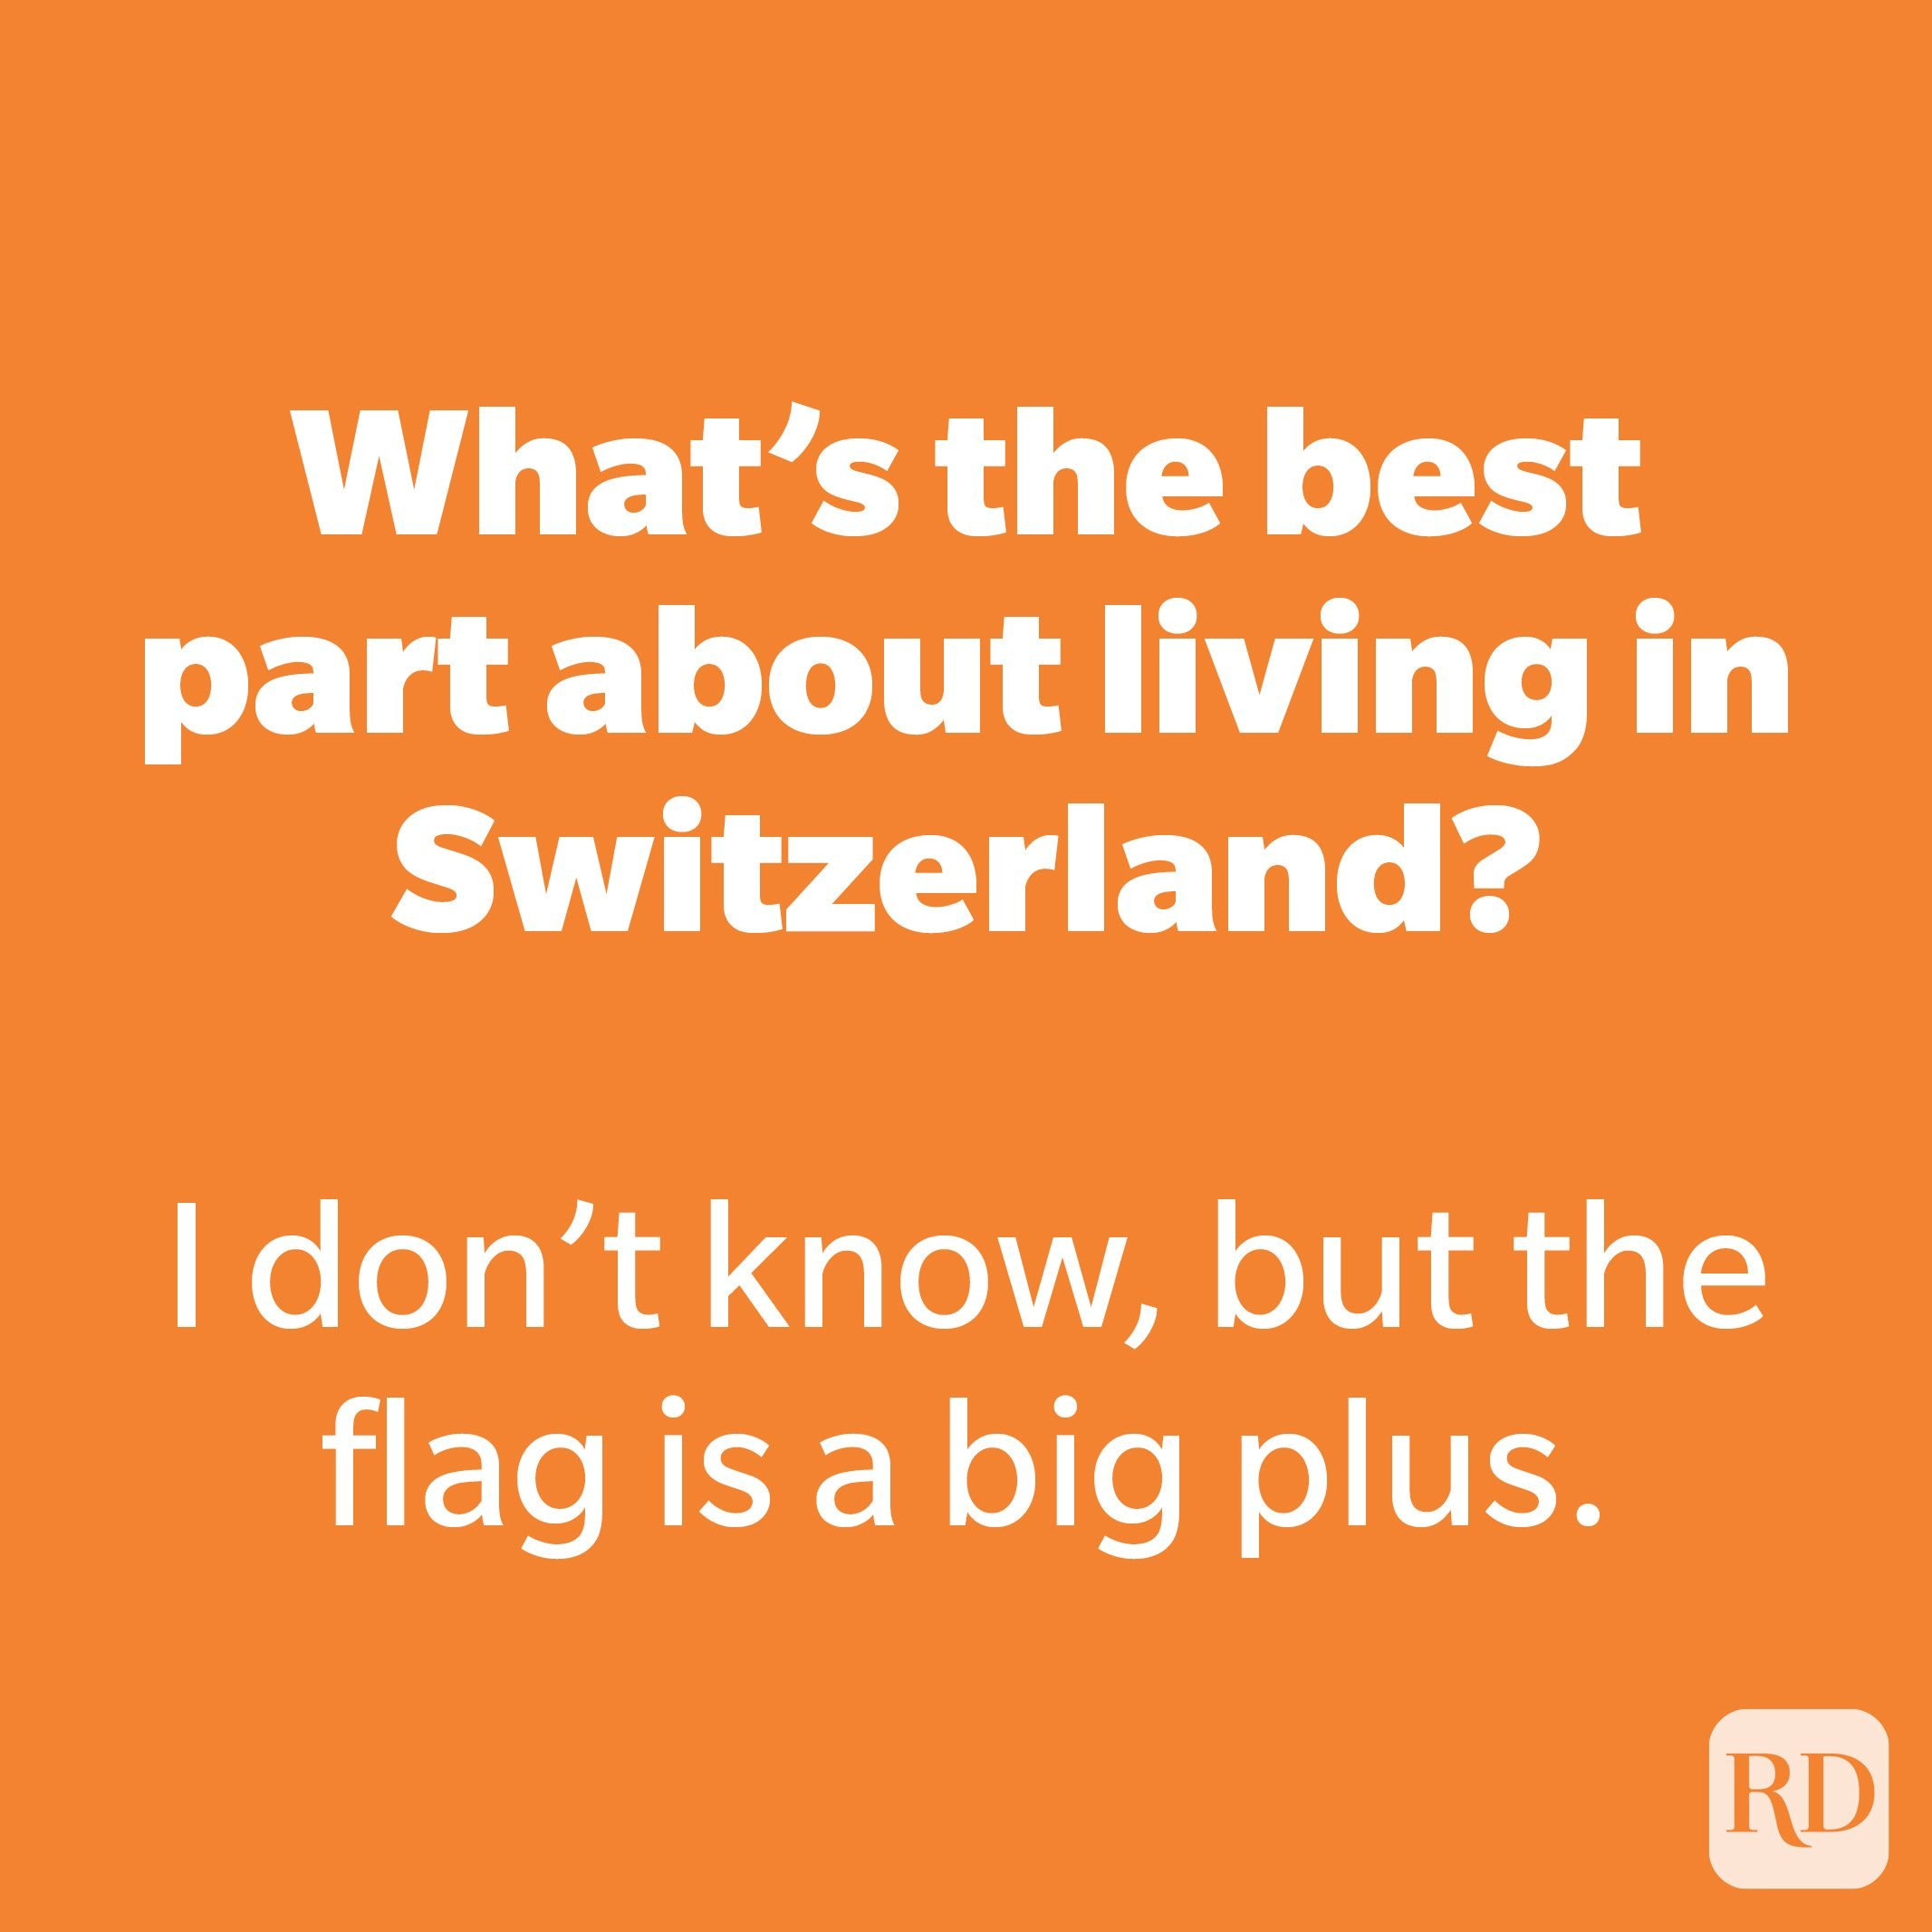 What's the best part about living in Switzerland?